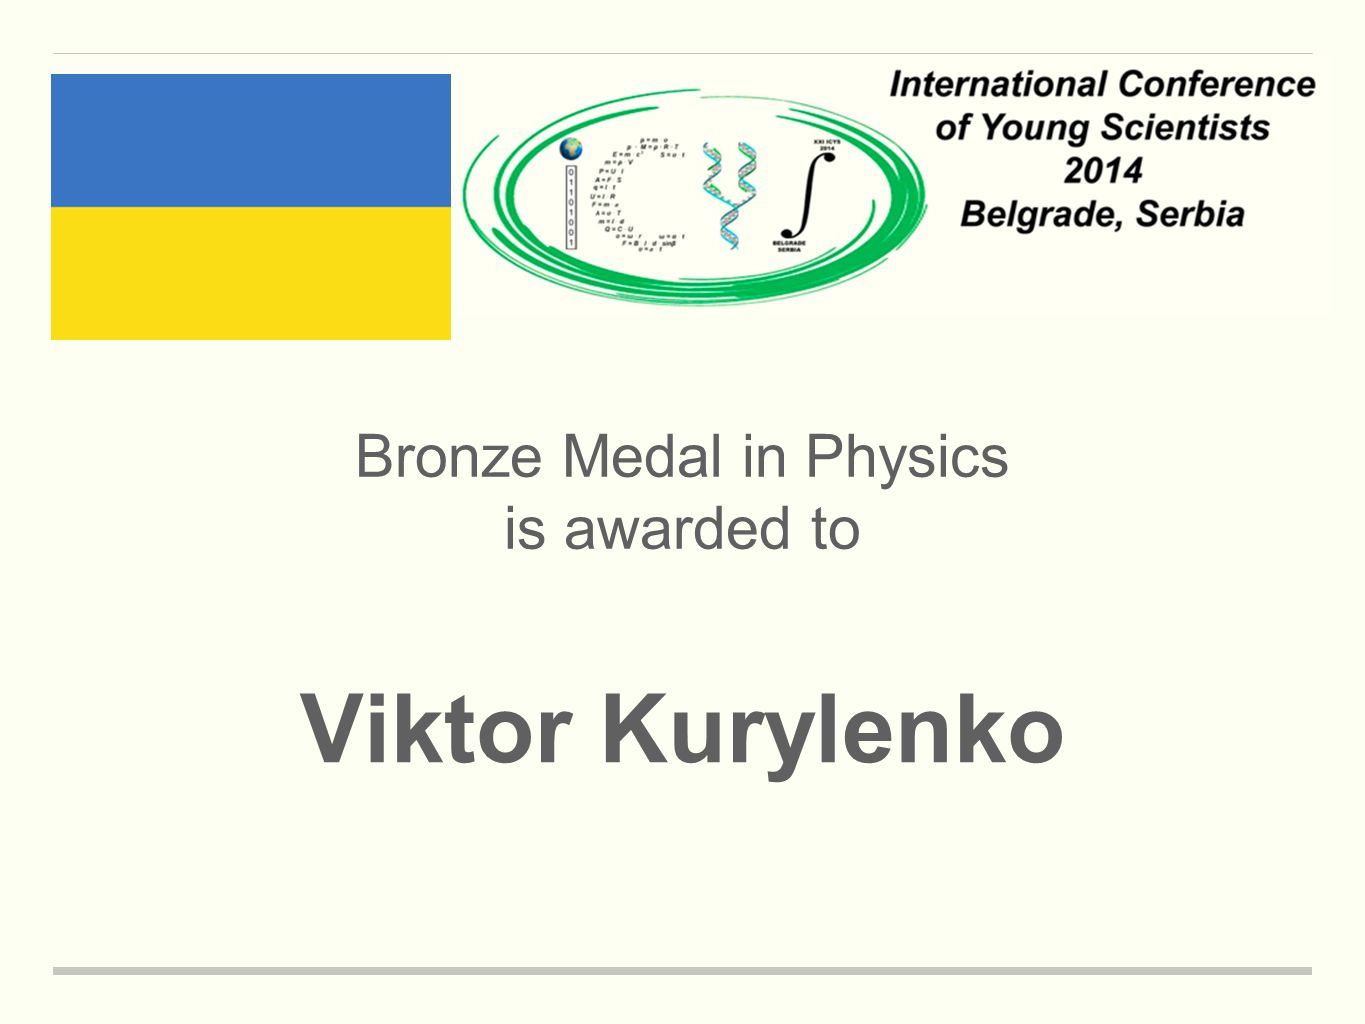 Bronze Medal in Physics is awarded to Viktor Kurylenko